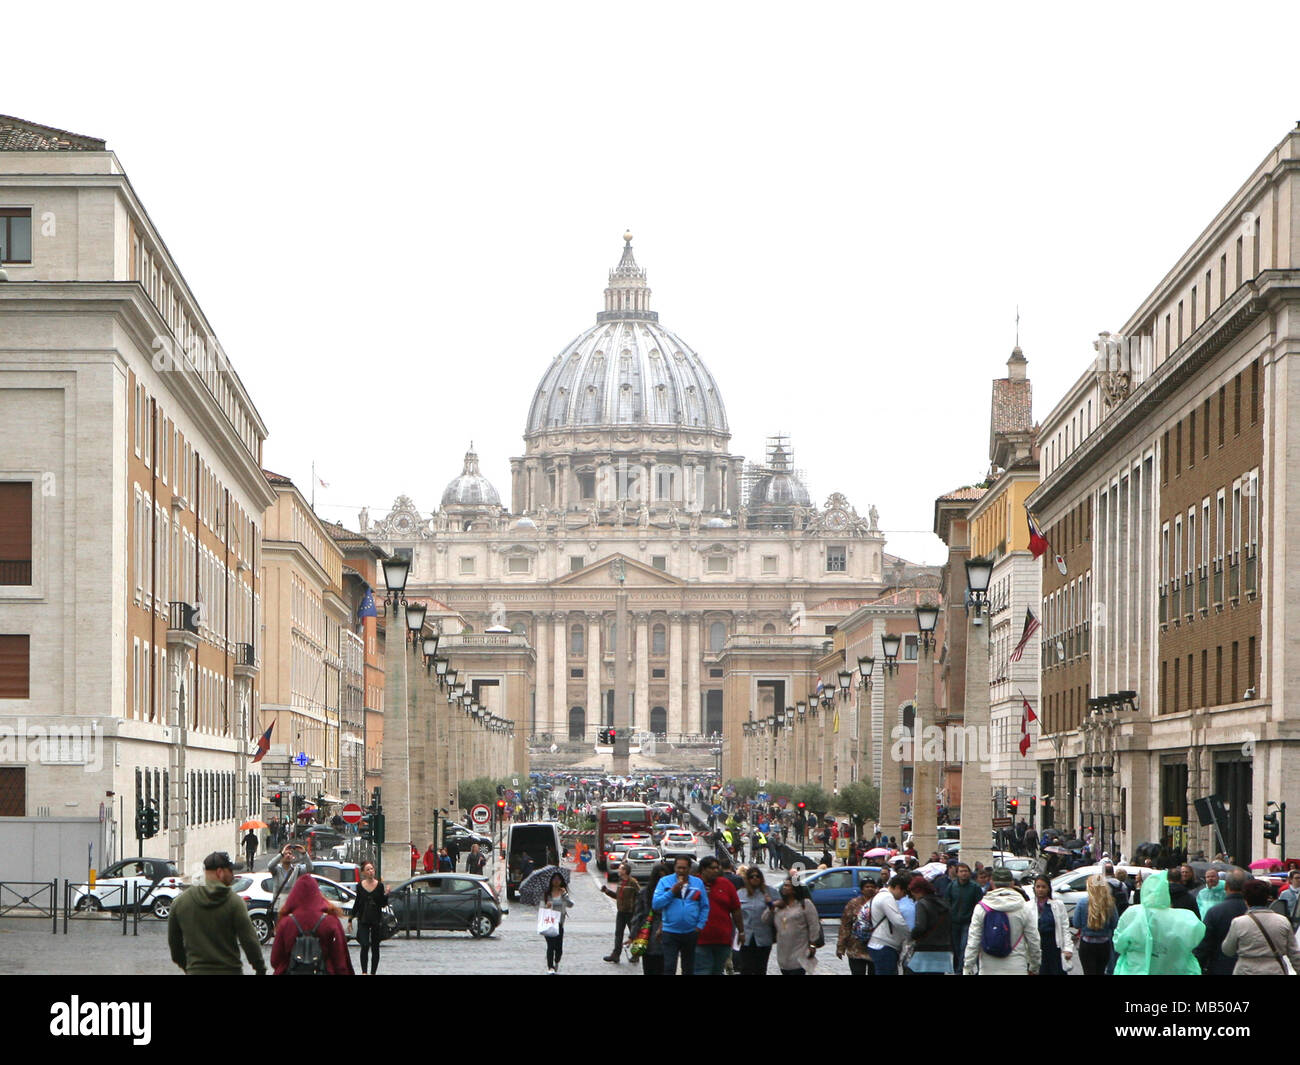 Flow of people coming and going to St. Peter, Rome, Italy - Stock Image